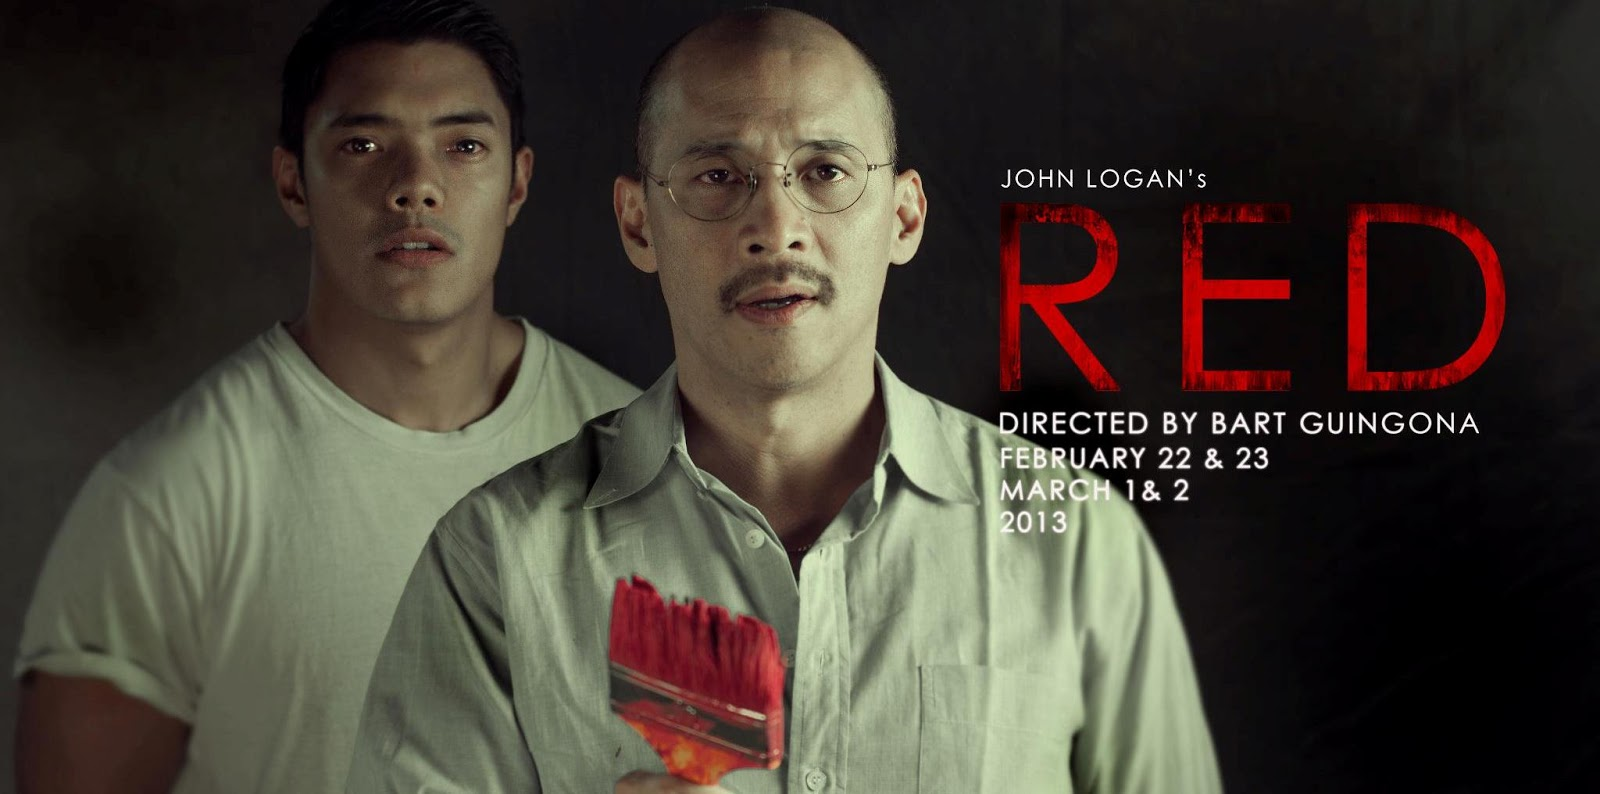 2010 Tony Award-winning Play RED premieres in the Philippines, 2/22